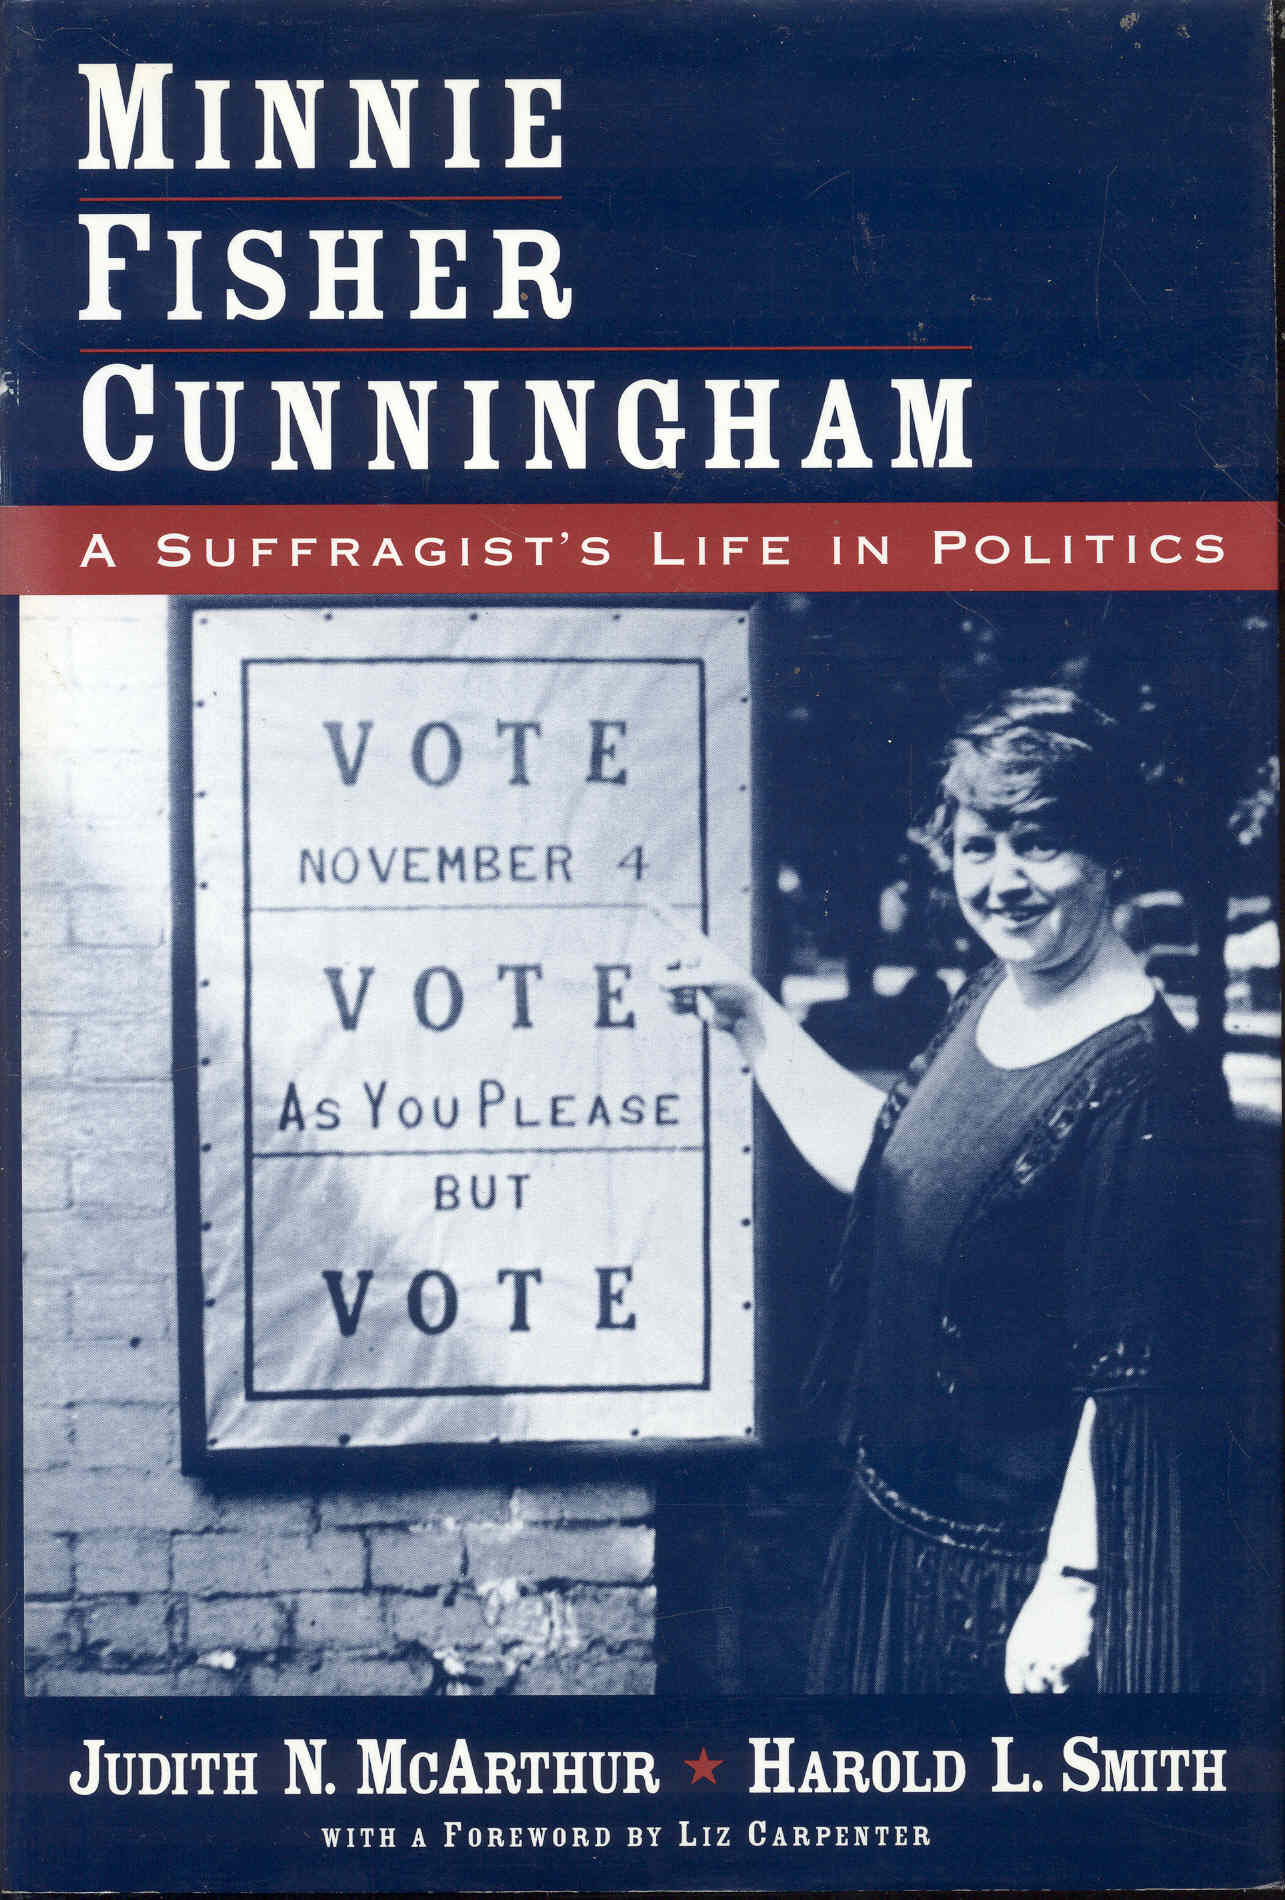 Image for Minnie Fisher Cunningham: A Suffragist's Life in Politics